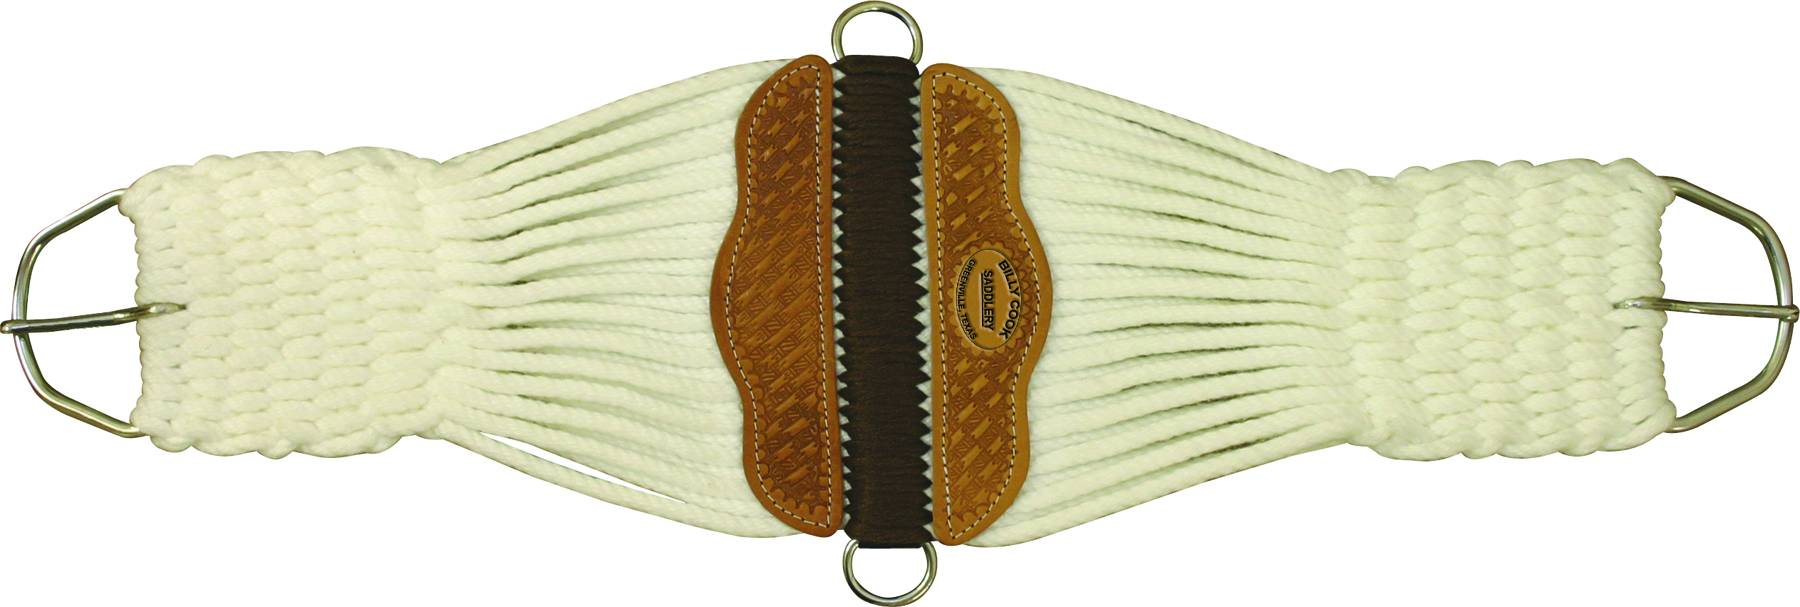 Billy Cook Saddlery Cinch